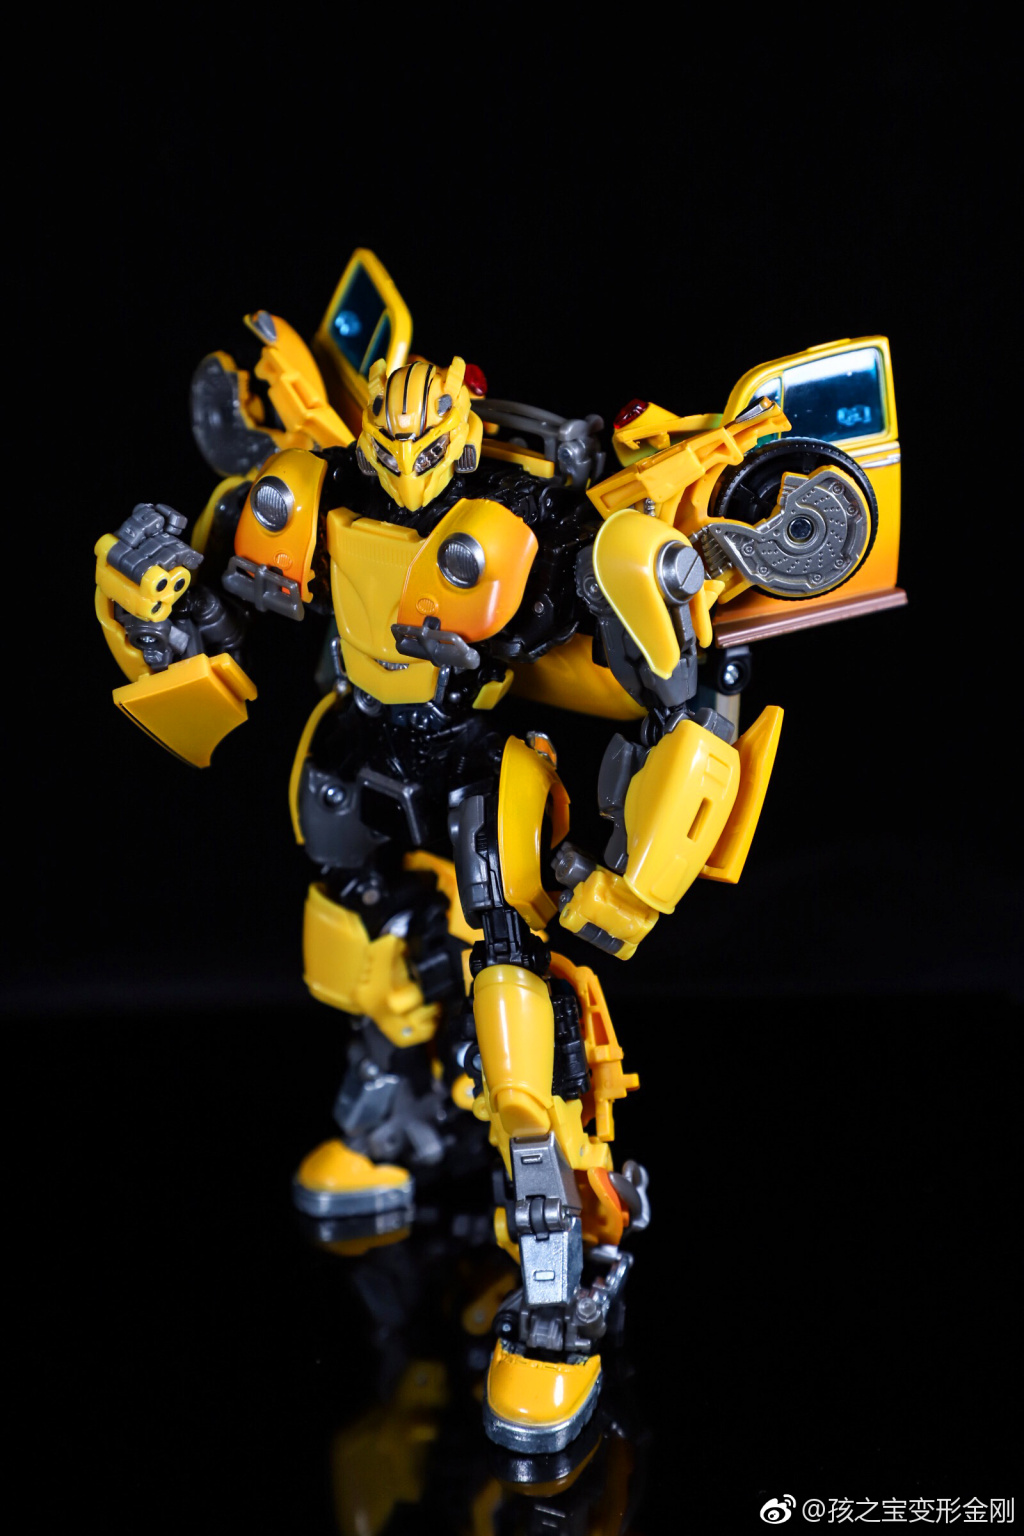 Tranformers Masterpiece Movie MPM-07 Bumblebee (VW Beetle) Official And Announcement And Images ...